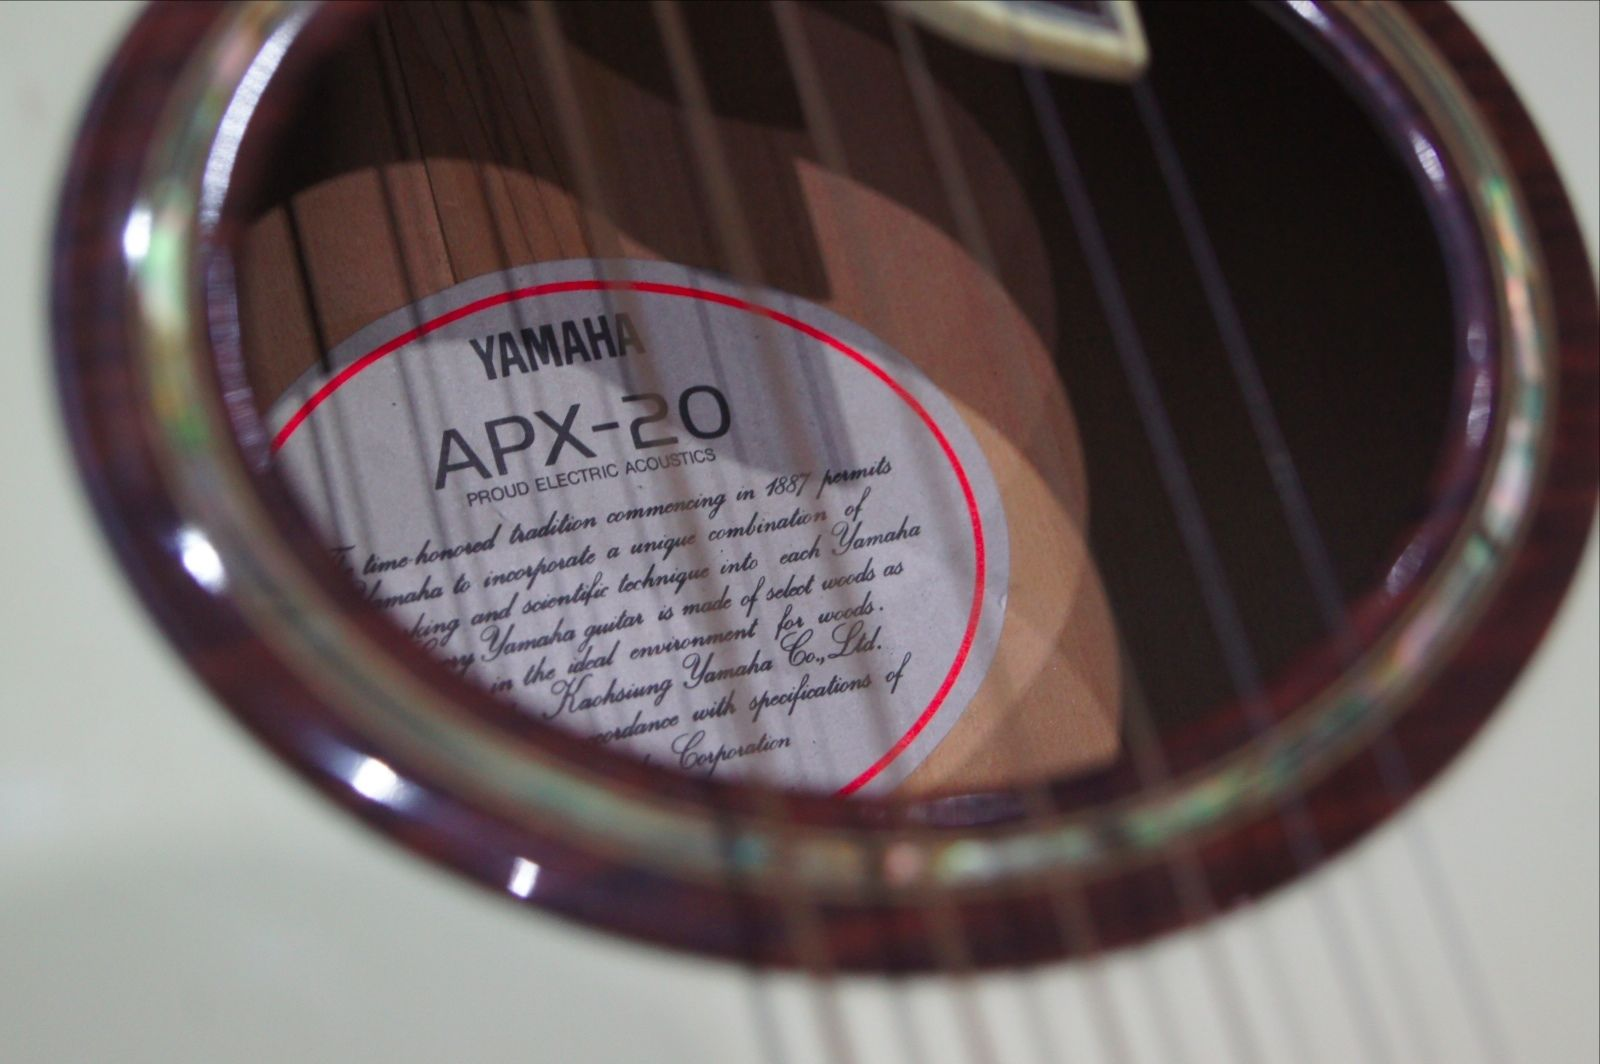 Yamaha APX-20 Electric Acoustic guitar